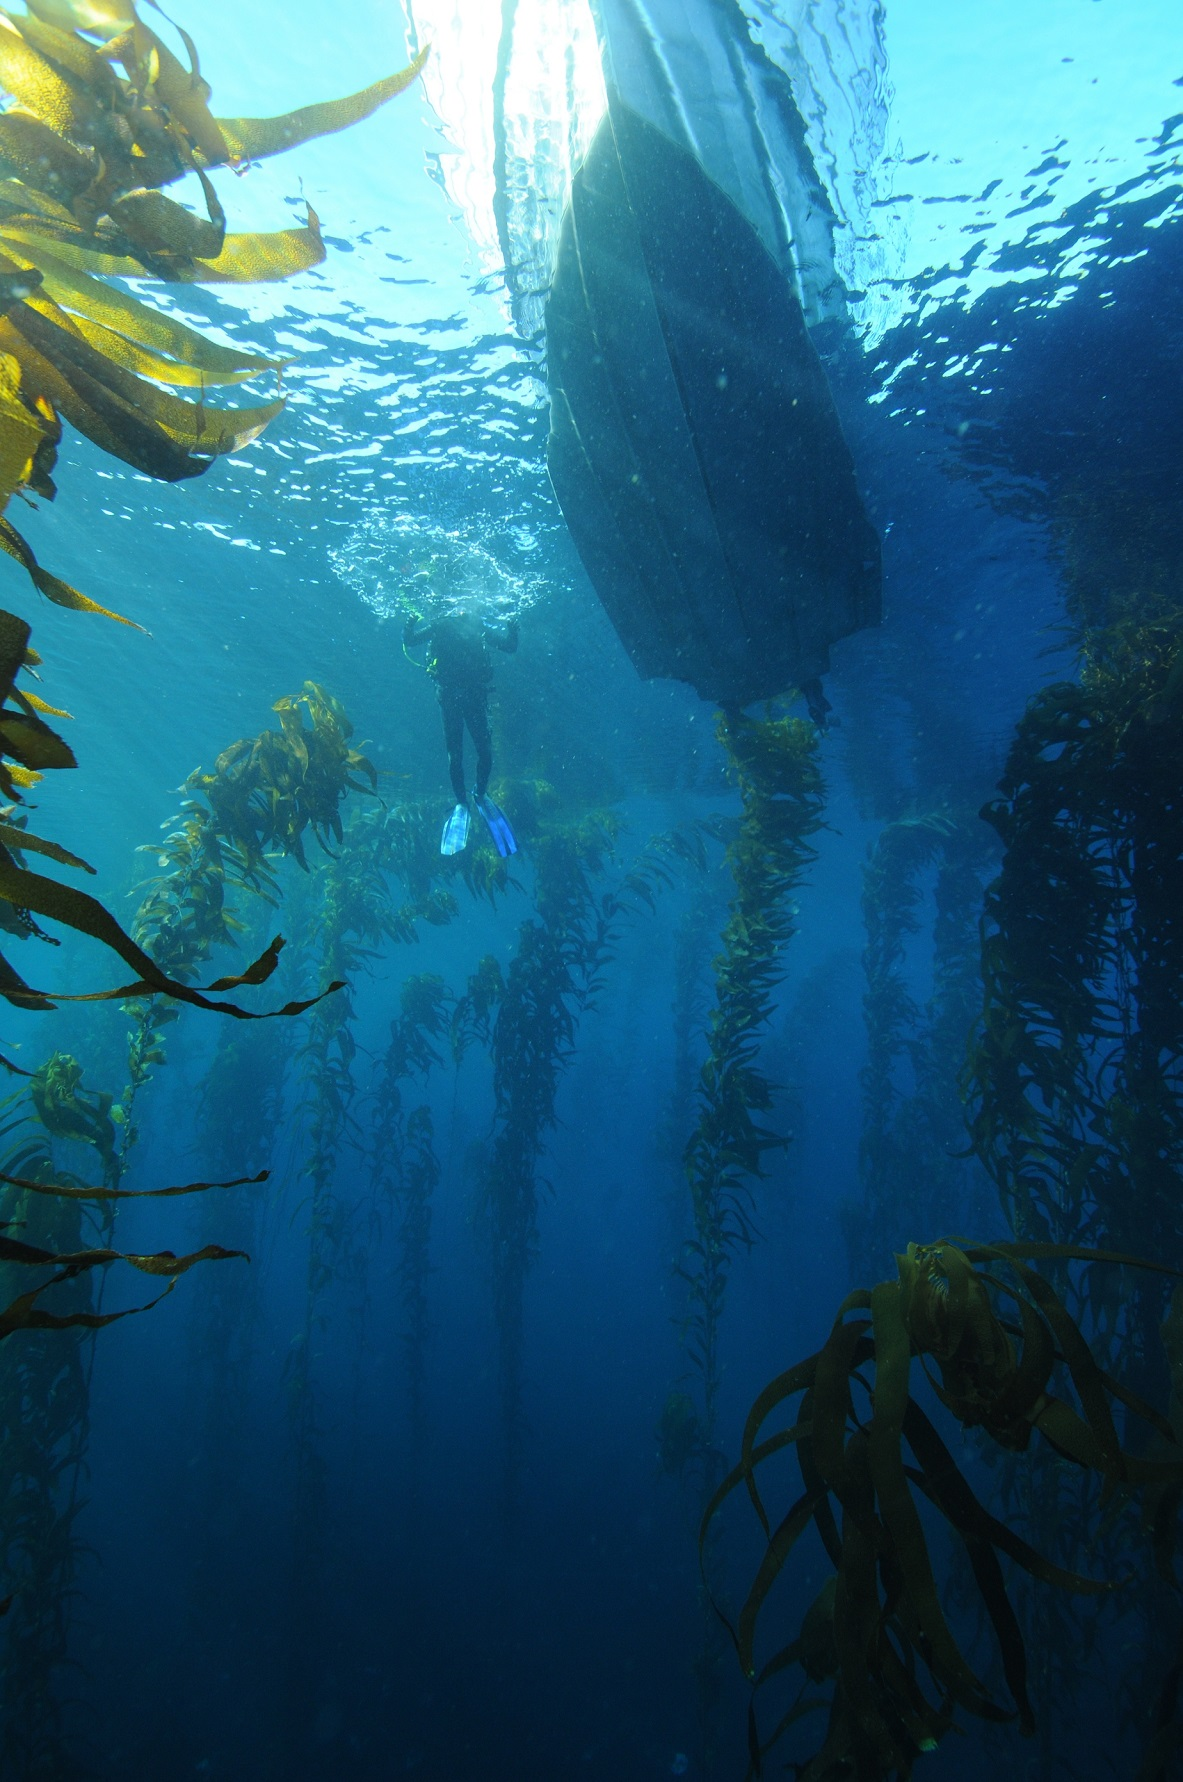 Kelp forest with boat